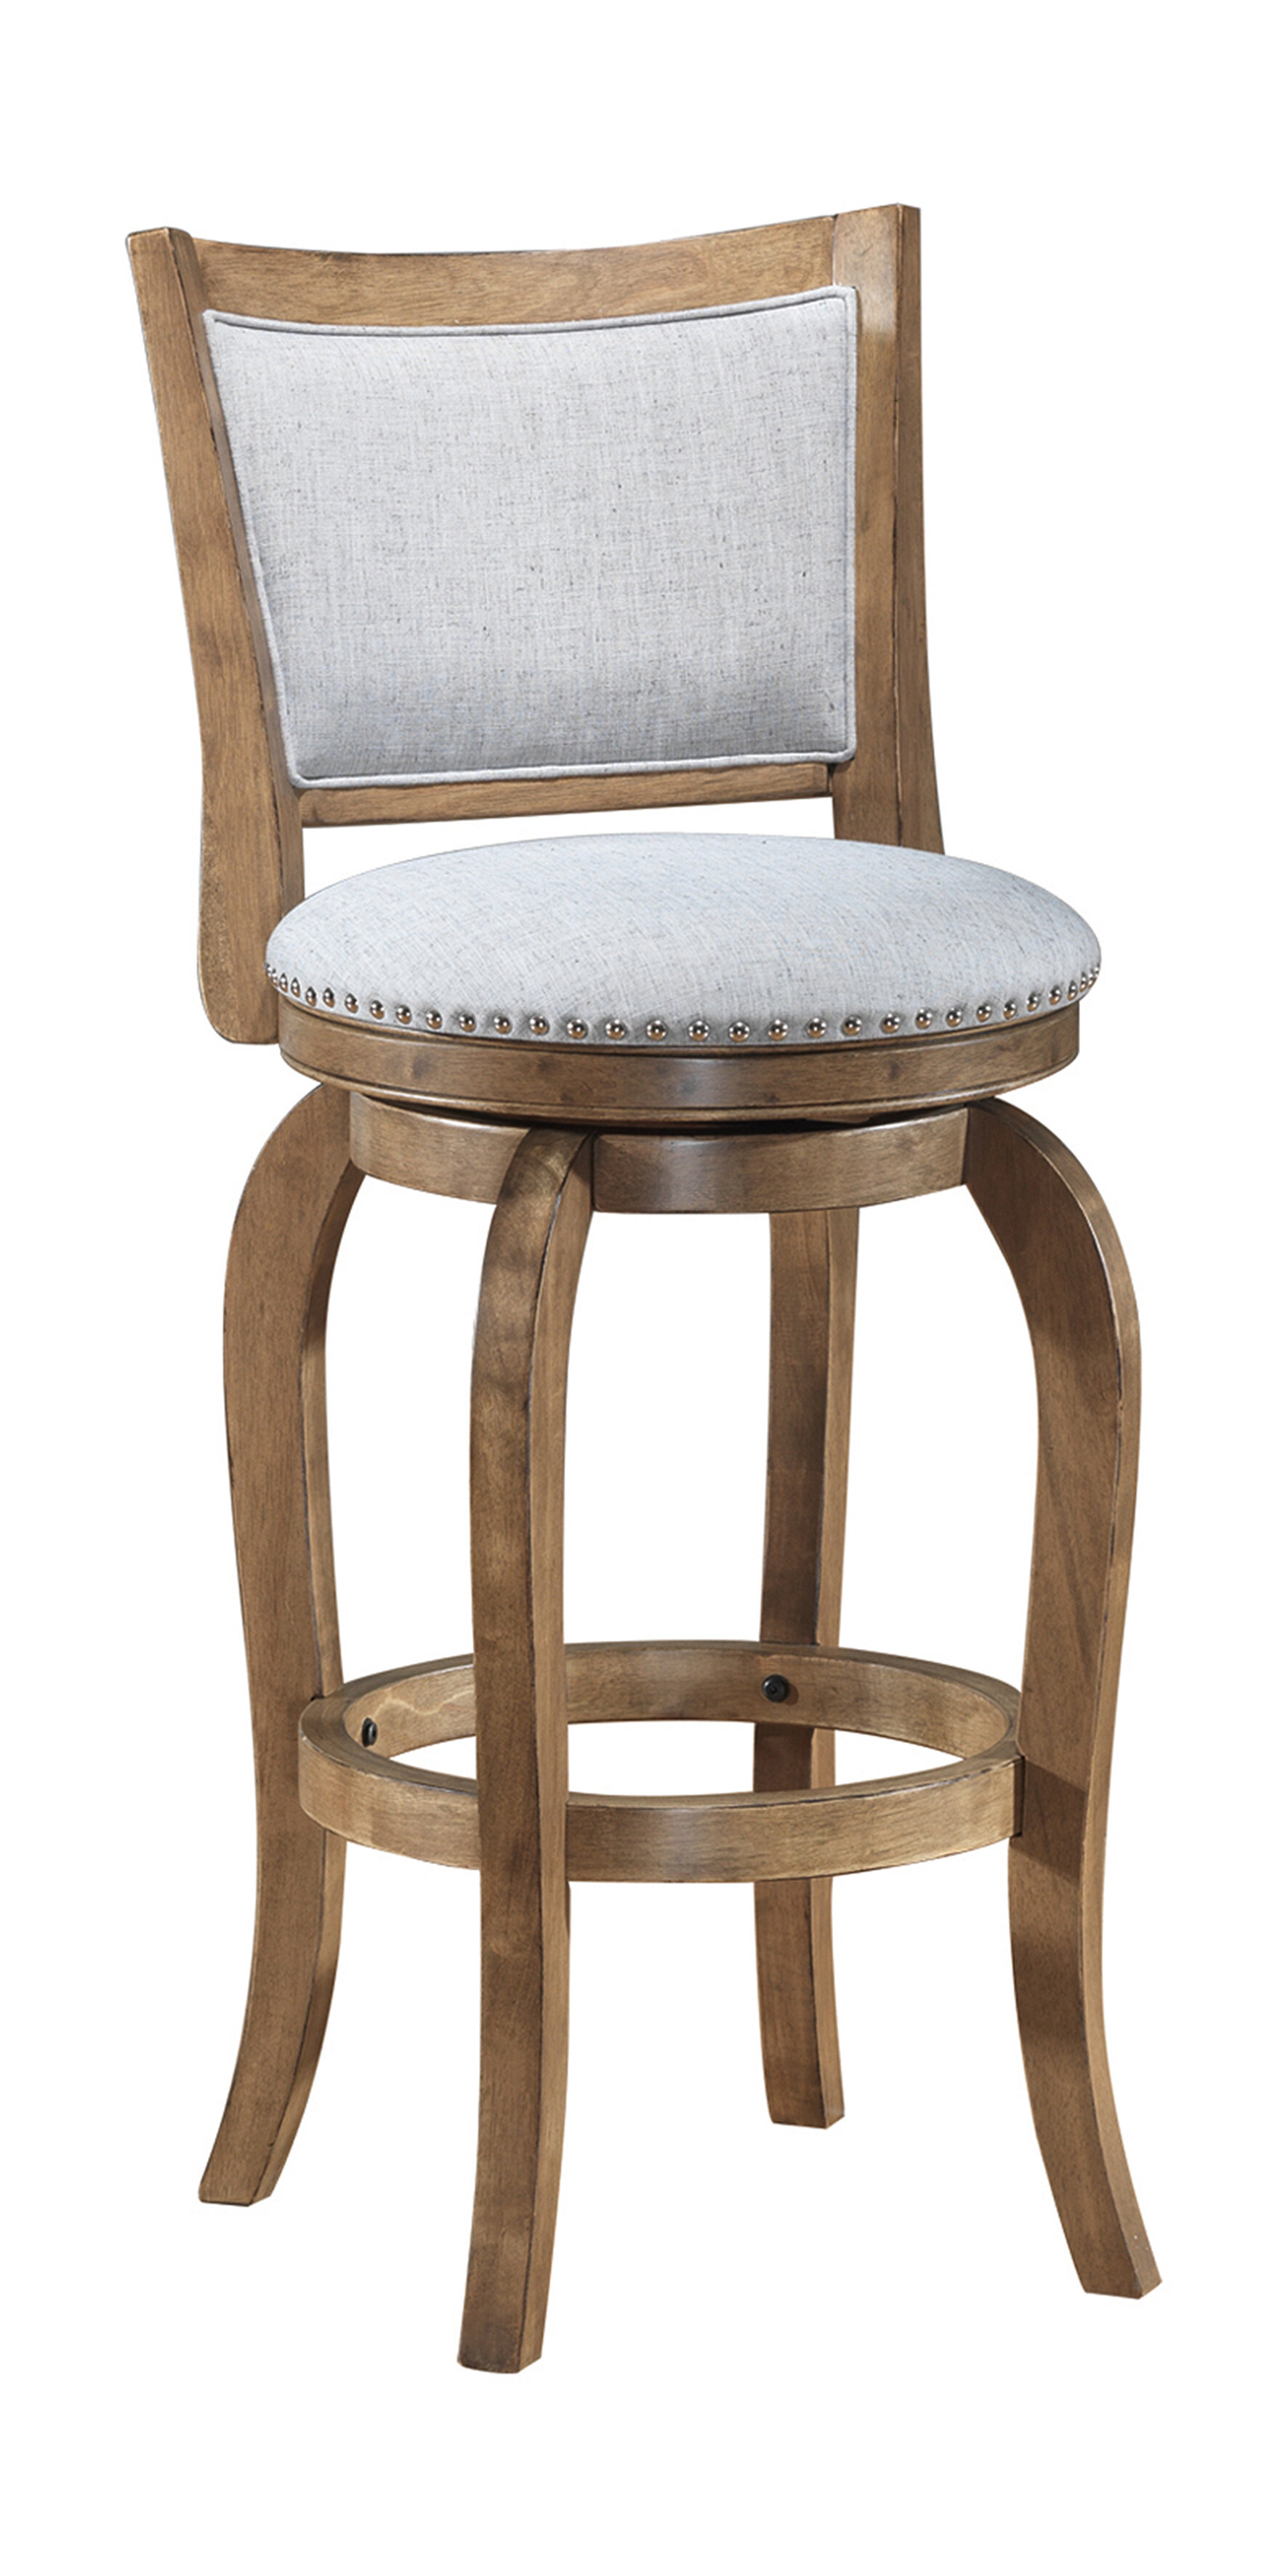 Wooden Swivel Bar Stools With Arms Summervilleaugusta Org